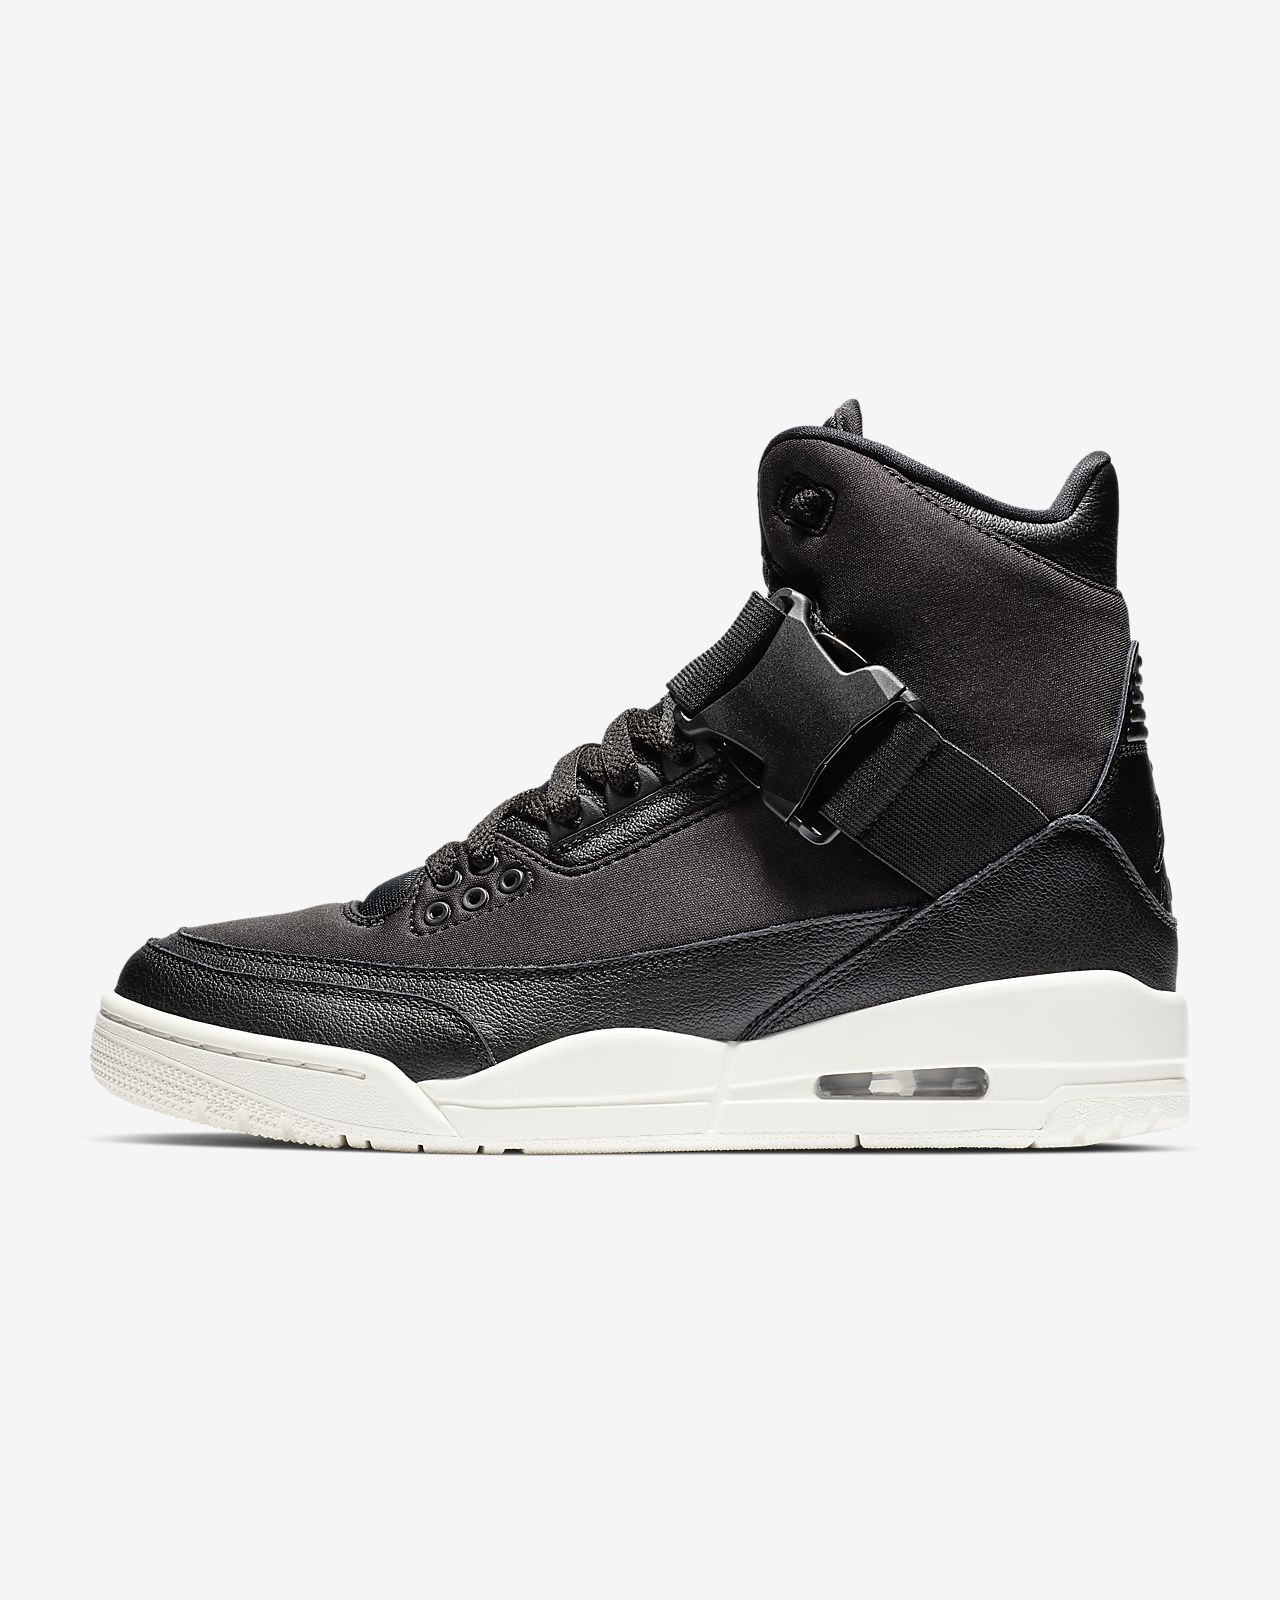 new arrival eab7e 56e07 ... Air Jordan 3 Retro Explorer XX Women s Shoe